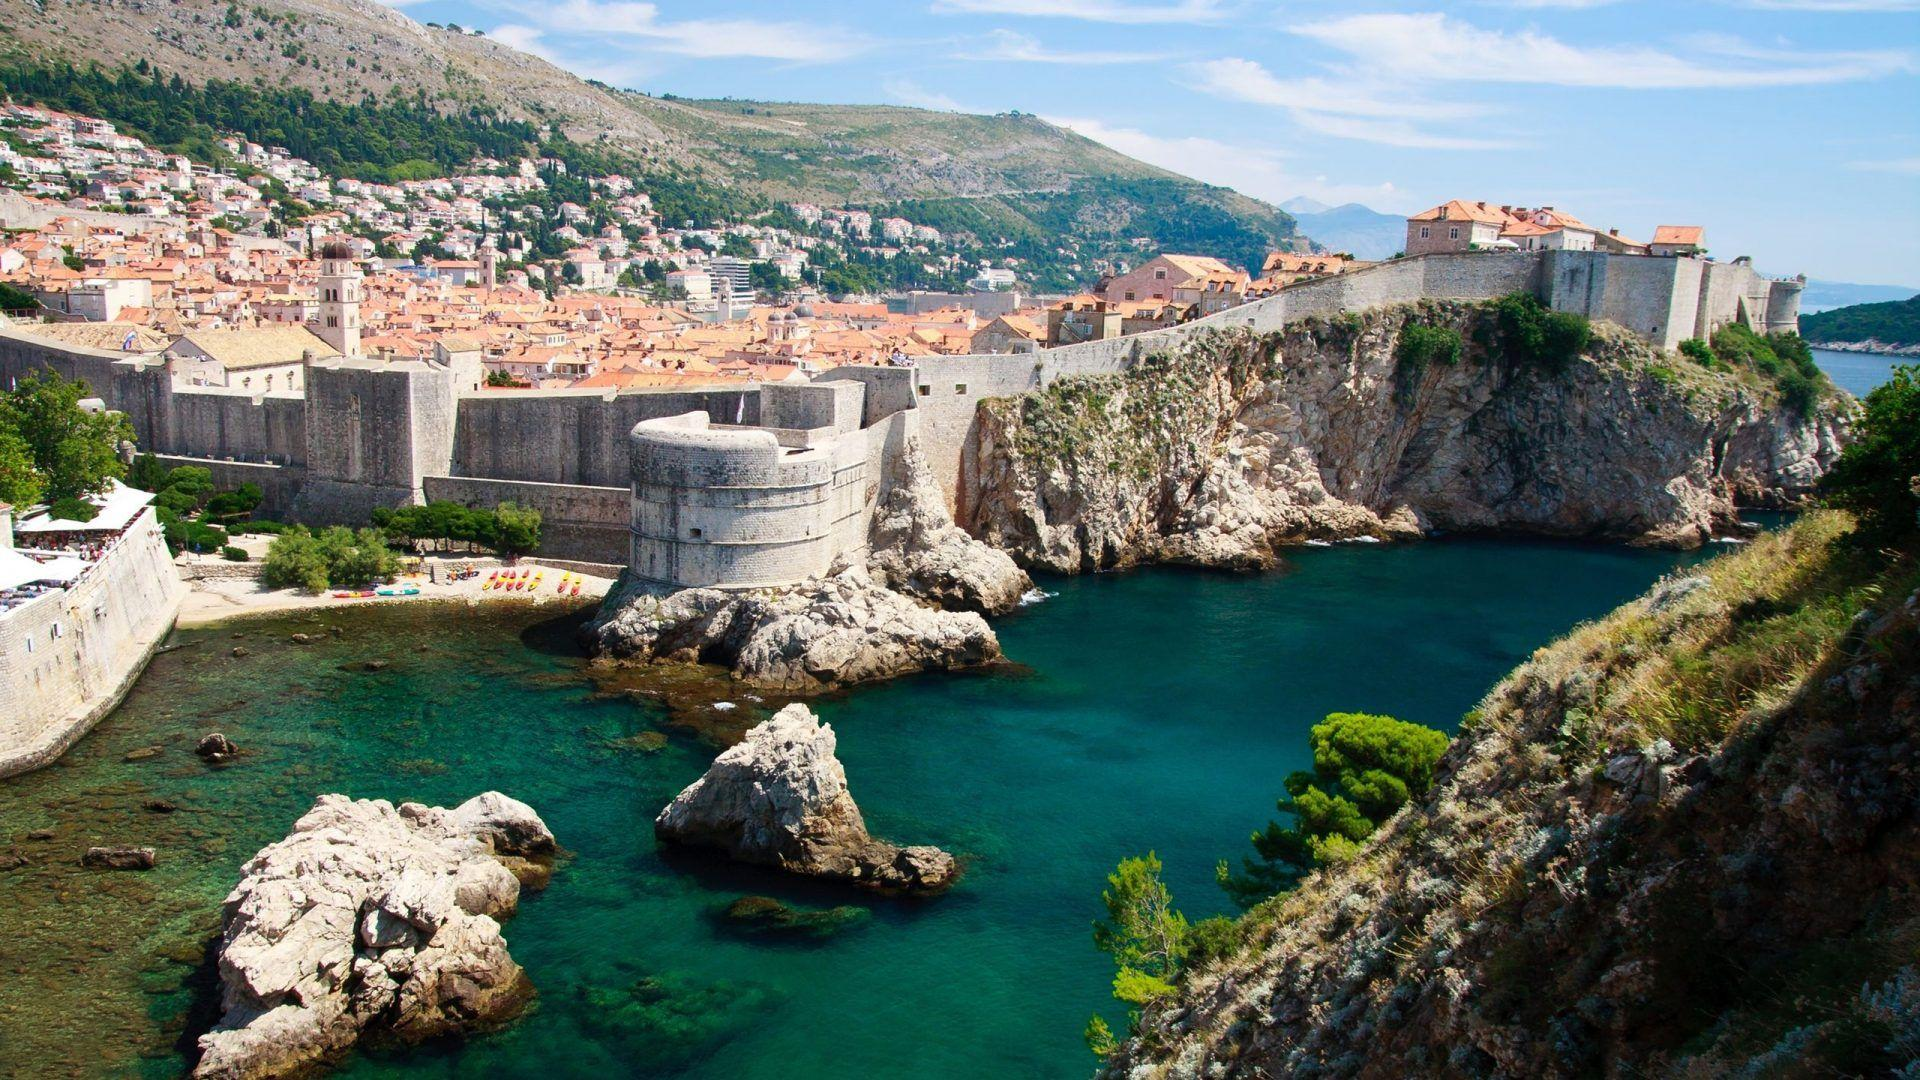 Desktop Wallpapers Hd Old City Walls In Dubrovnik, Croatia